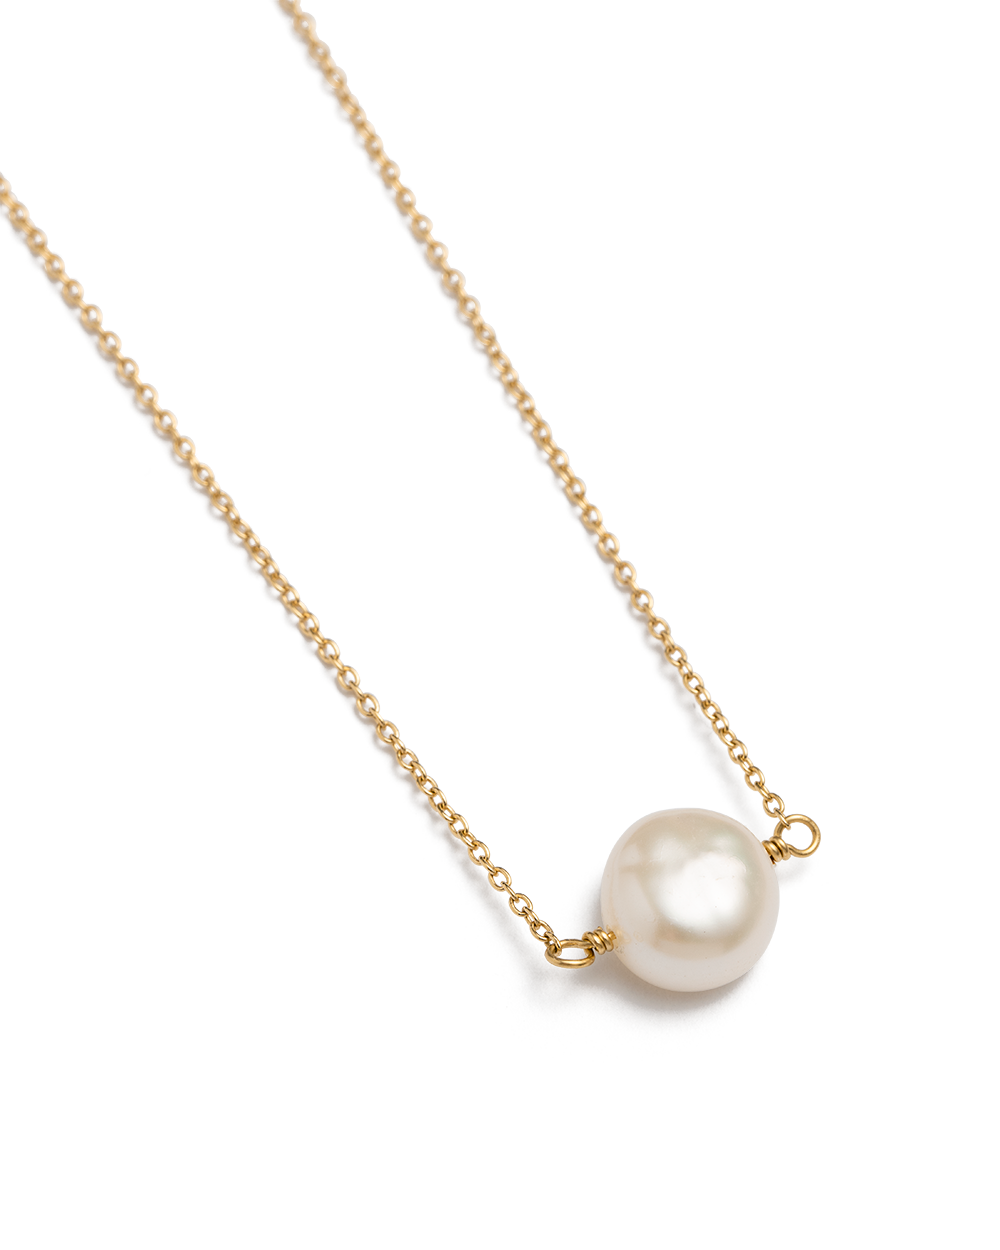 PEARL CHOKER (18K-GOLD-PLATED) 02